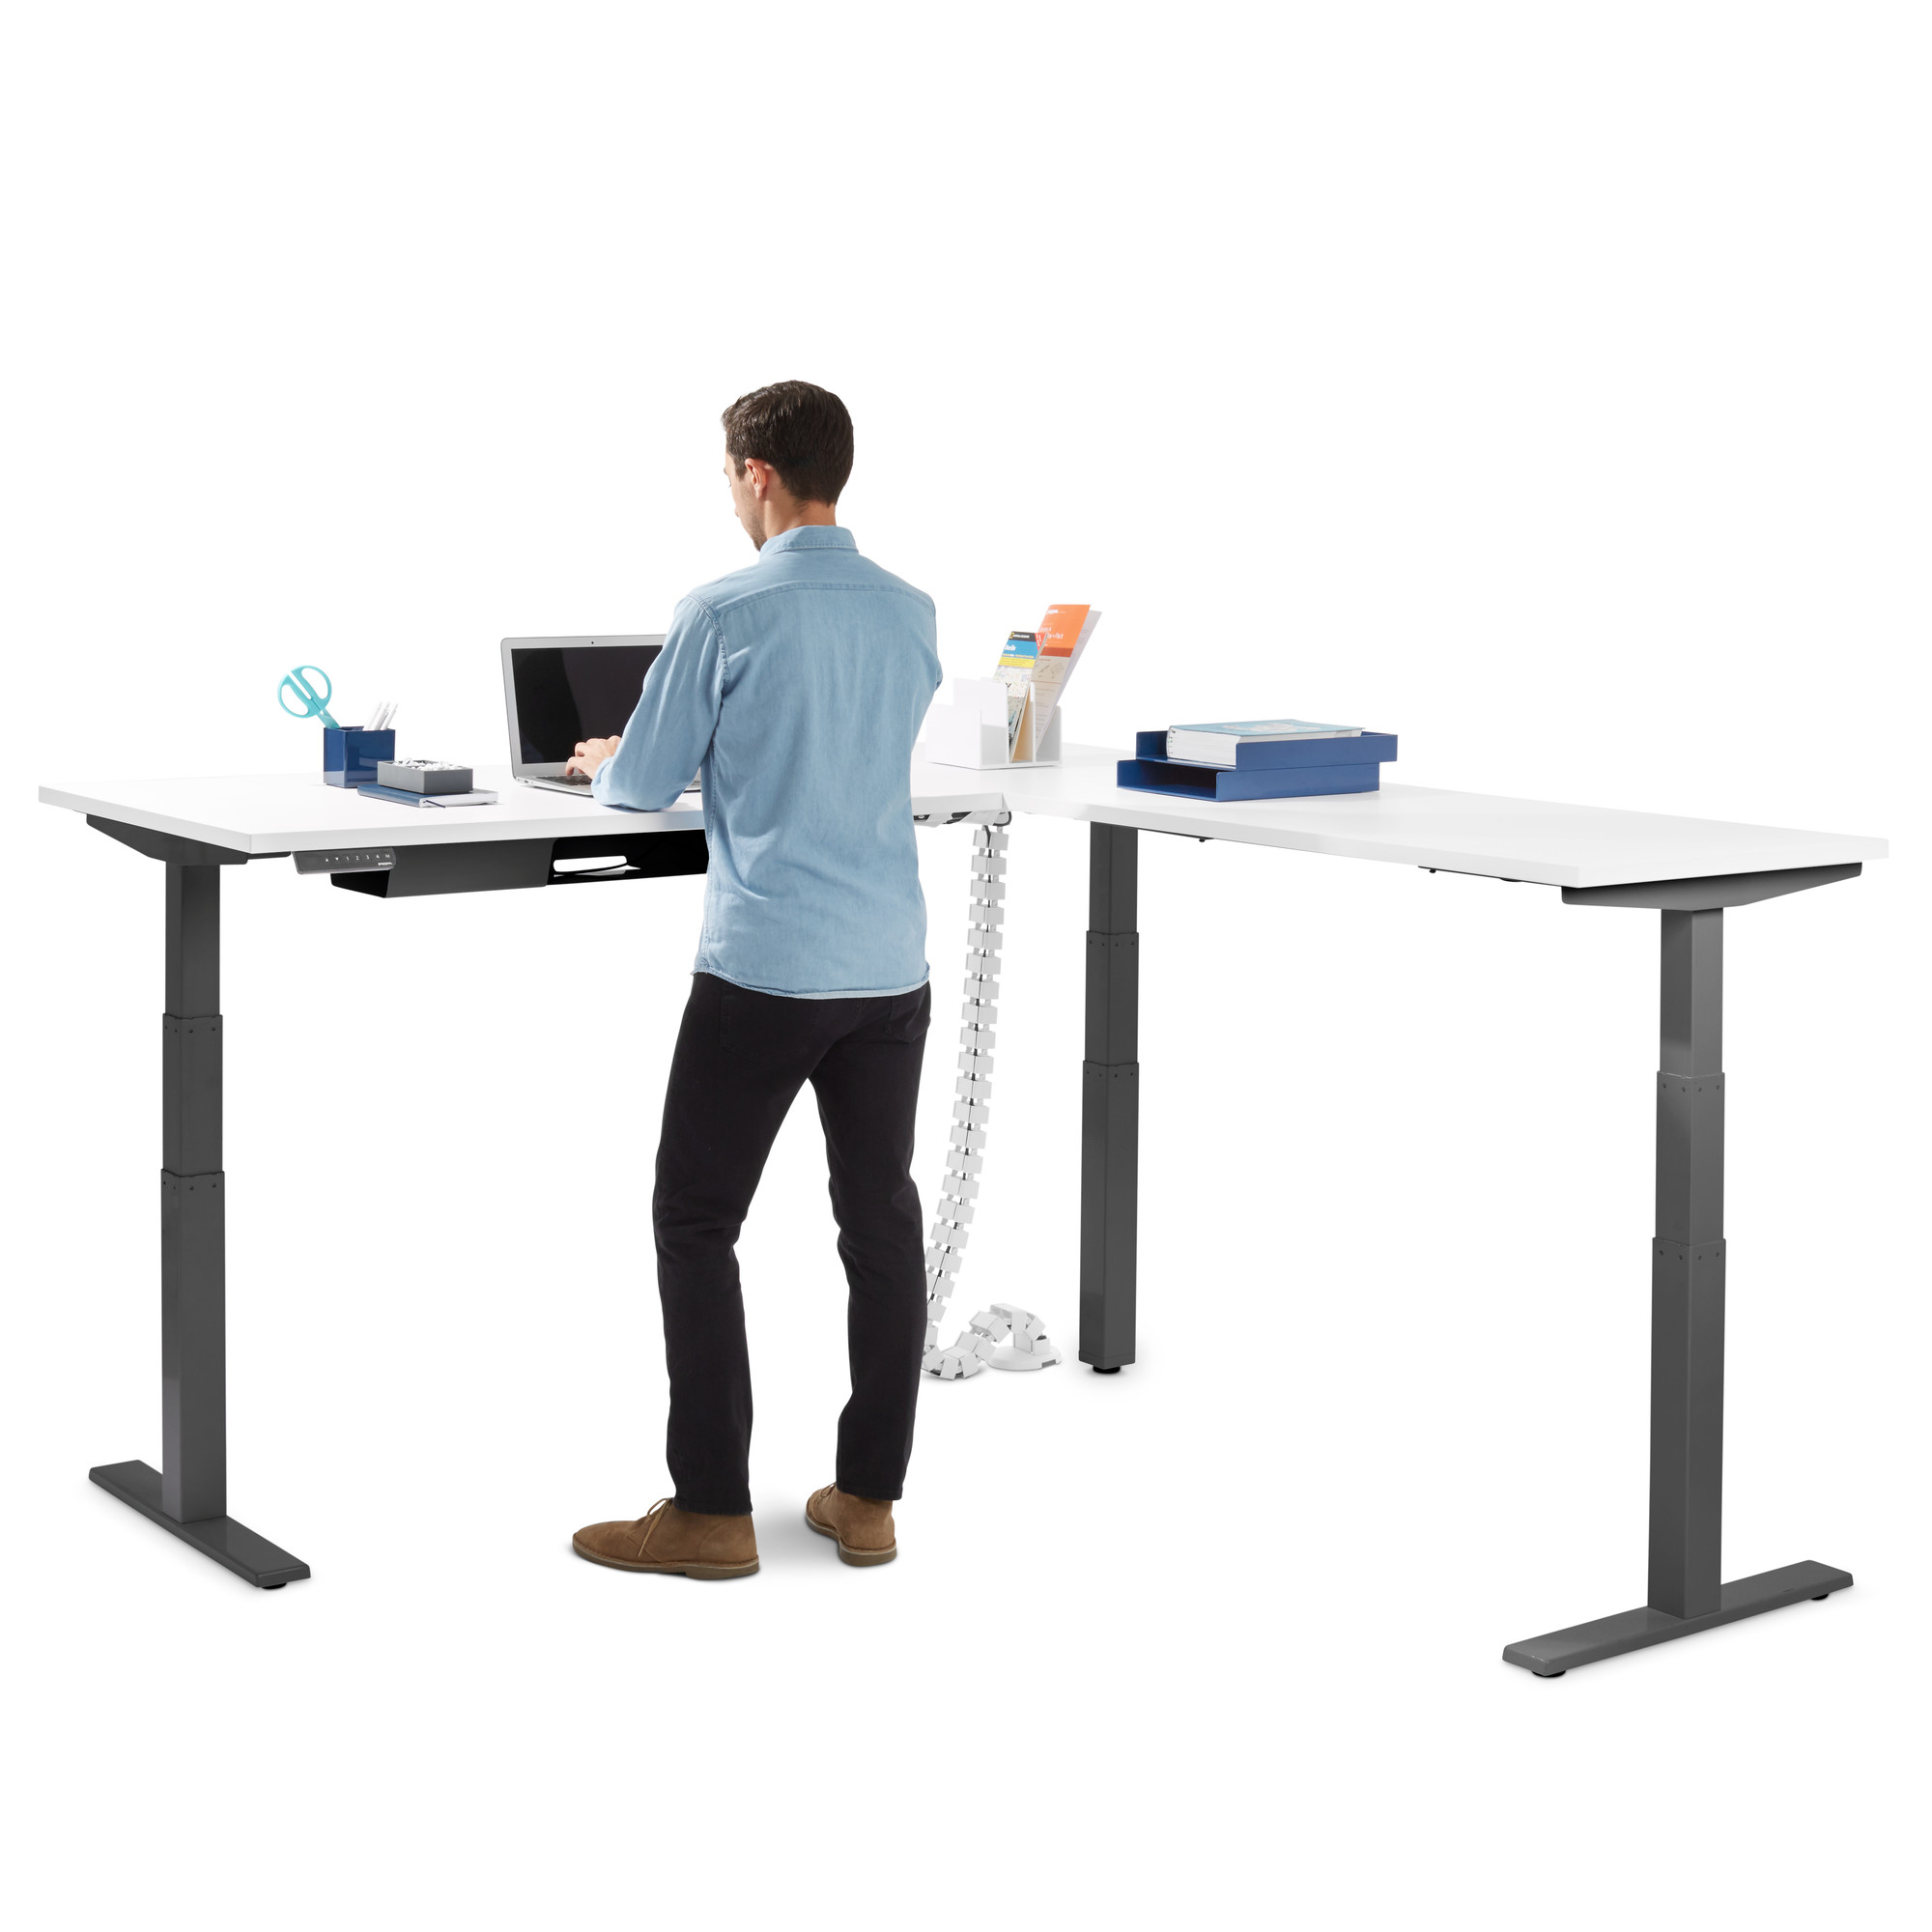 aluminum dp up adjustable l legs com desk made kitchen stand amazon light cool weight of dining living